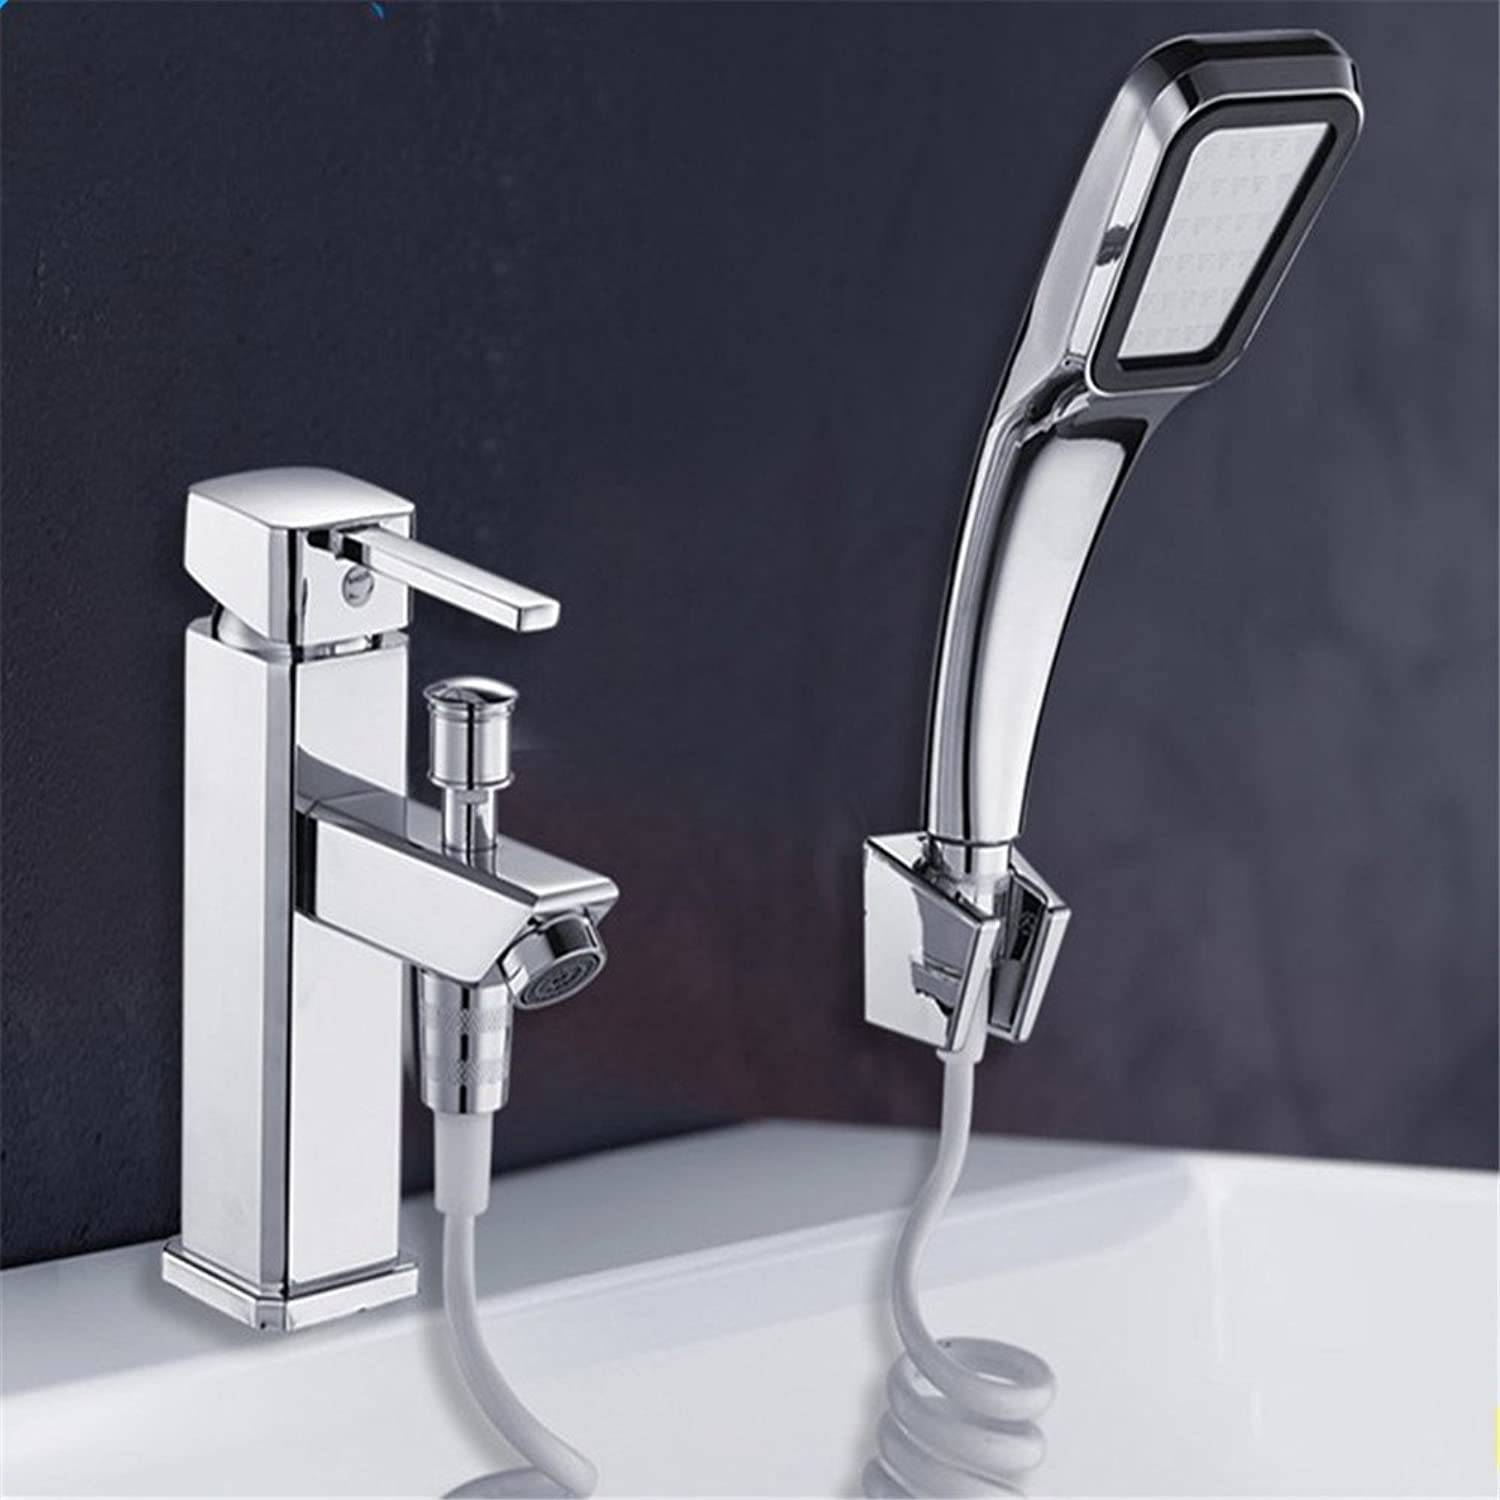 Commercial Single Lever Pull Down Kitchen Sink Faucet Brass Constructed Polished Chrome All-Copper Single Hole Basin Faucet Shower Shower Basin Bathtub Kitchen Sink Hot and Cold Water Dual Use